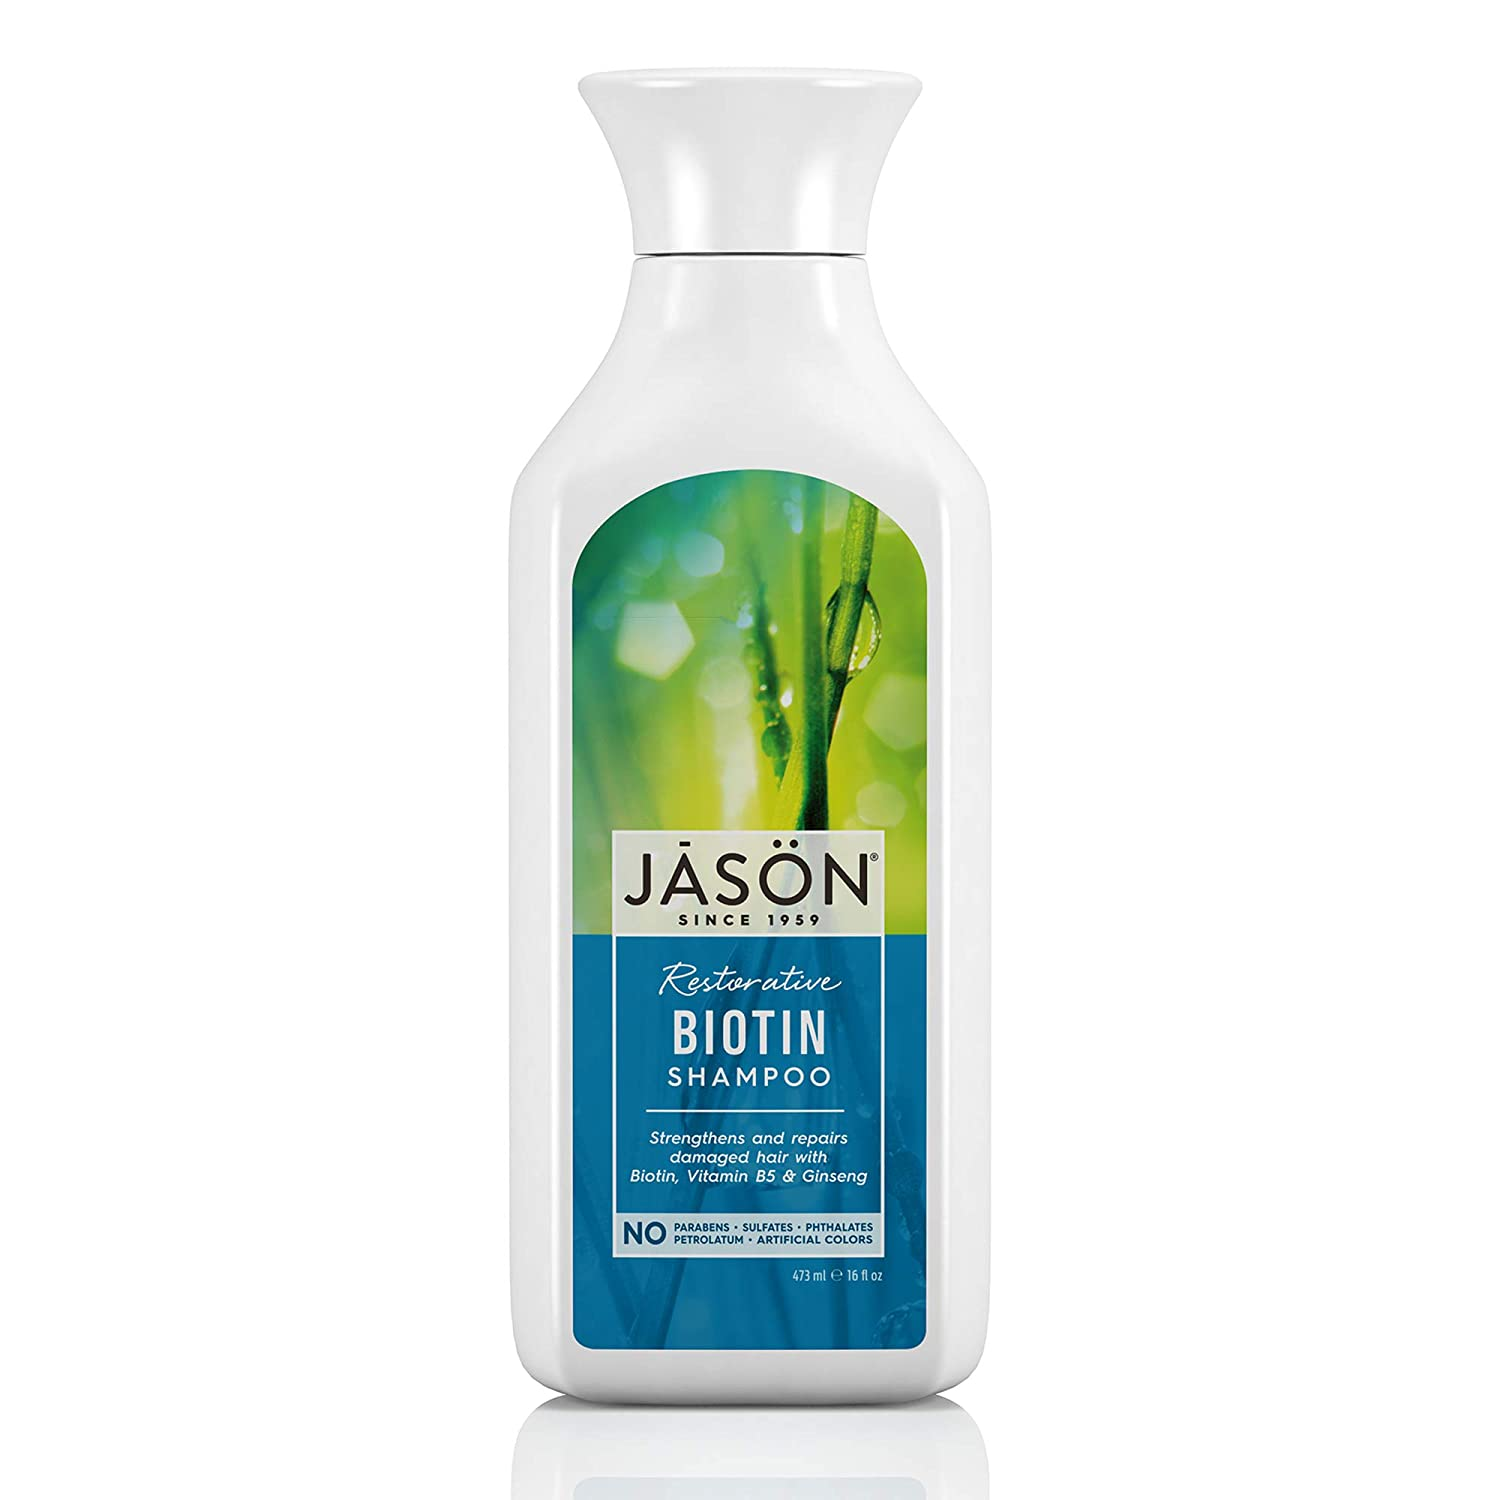 JASON Restorative Biotin Shampoo, 16 Ounce Bottle